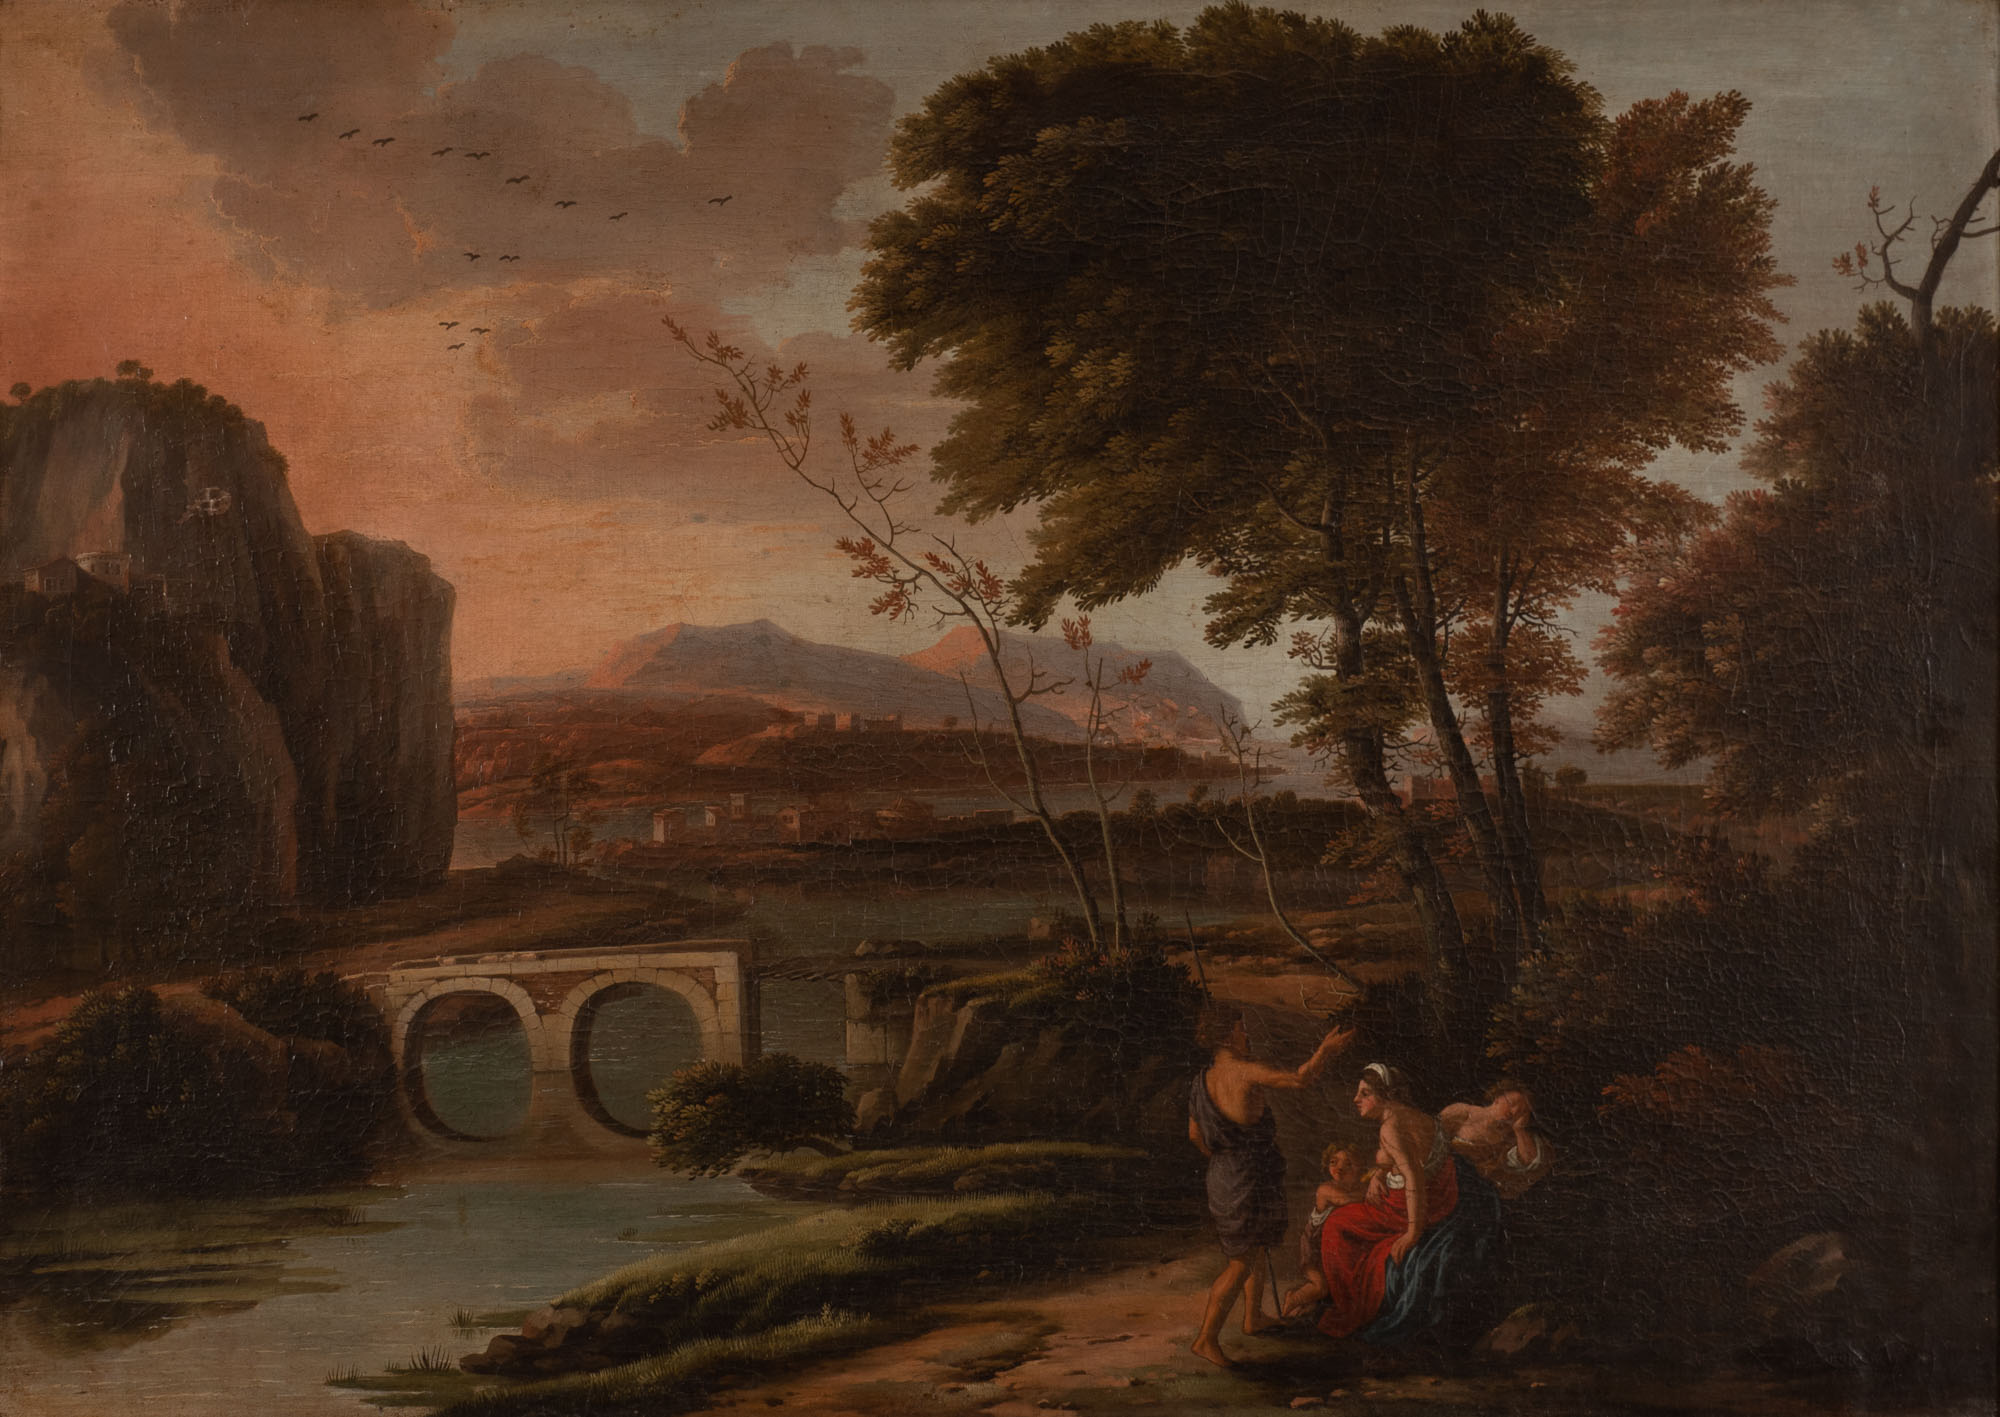 A Southern Landscape with Figures on a Roadway near a Bridge, 18th Century Imitator of Johannes Glauber (1646-c.1726).